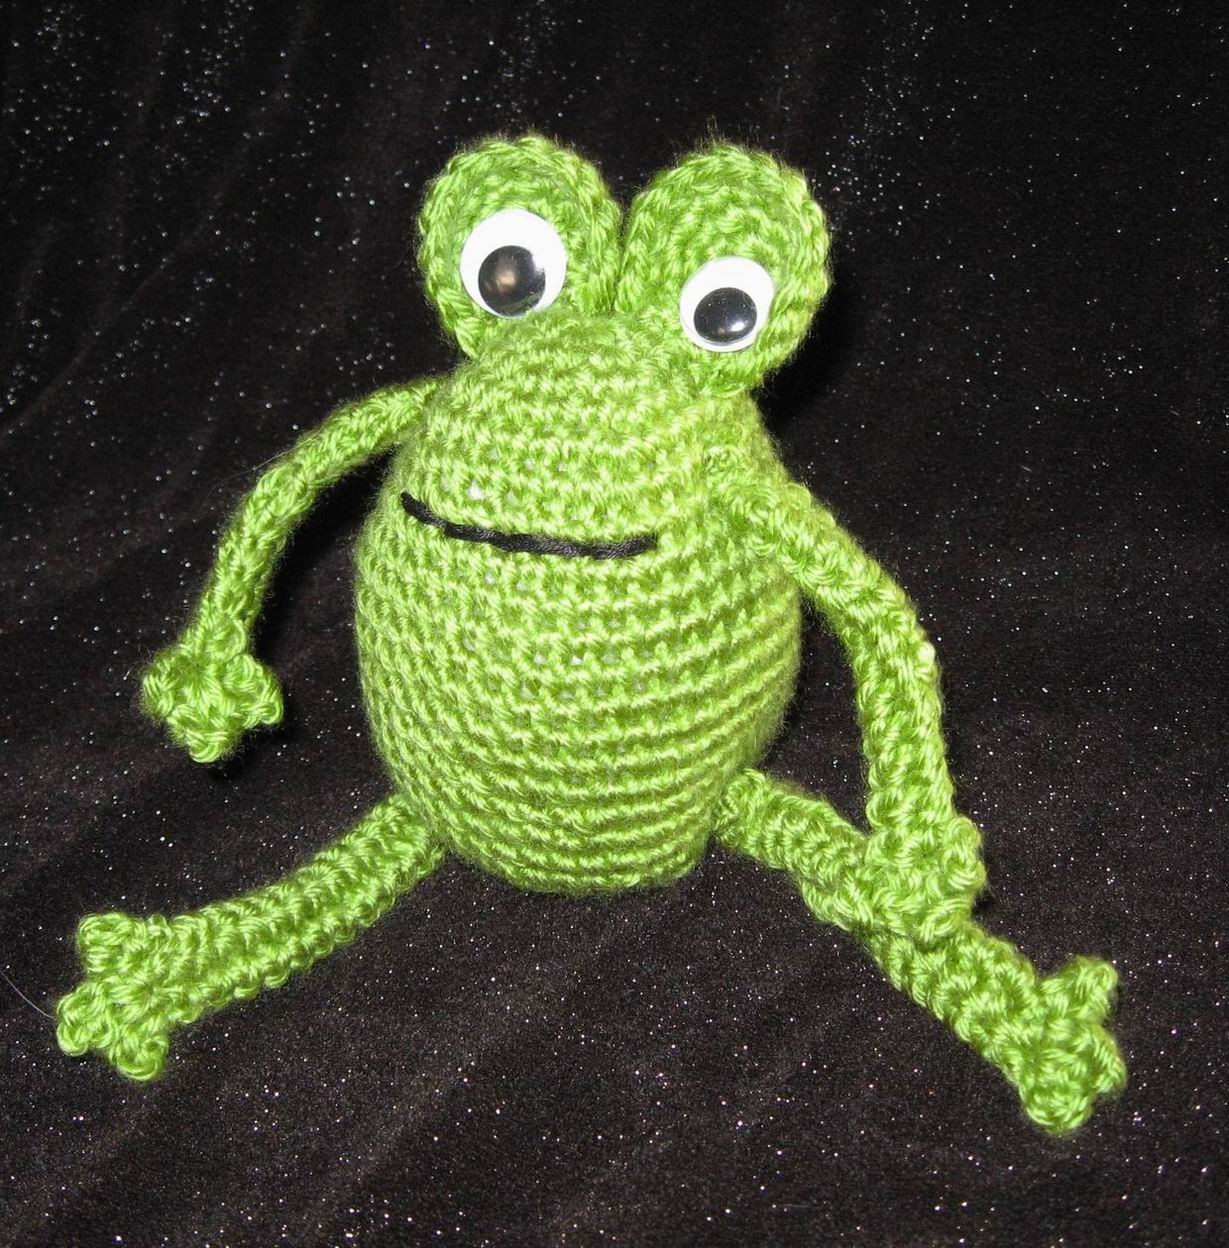 Crochet Frogs Best Of 2000 Free Amigurumi Patterns Frog Pattern Of Superb 49 Pictures Crochet Frogs